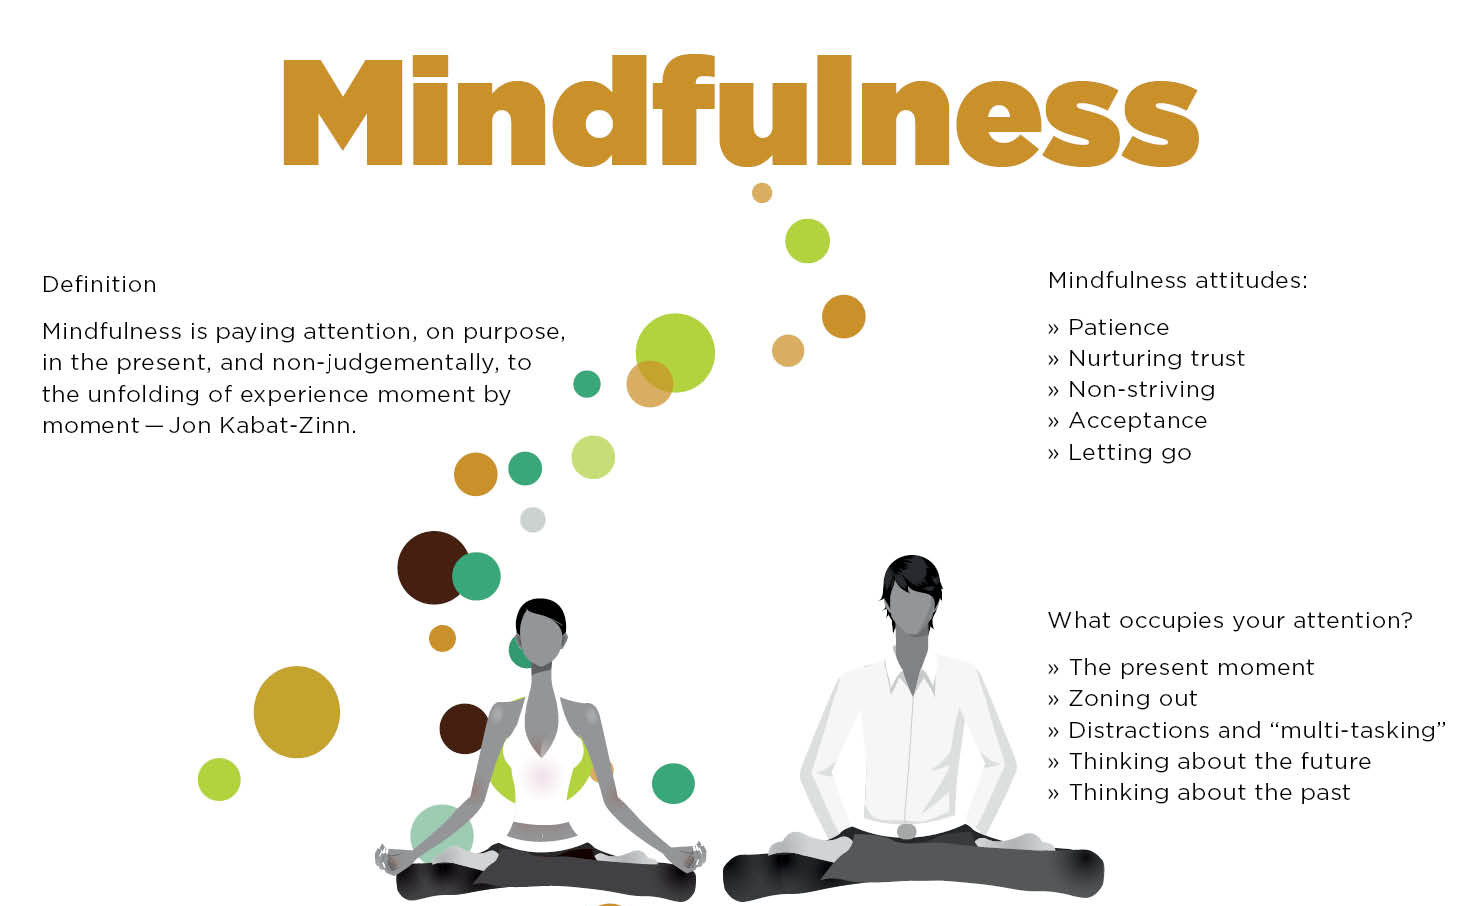 an analysis of right mindfulness of buddhism This prompted him to contemplate the meaning of life, death and suffering   action, right livelihood, right effort, right mindfulness and right concentration.